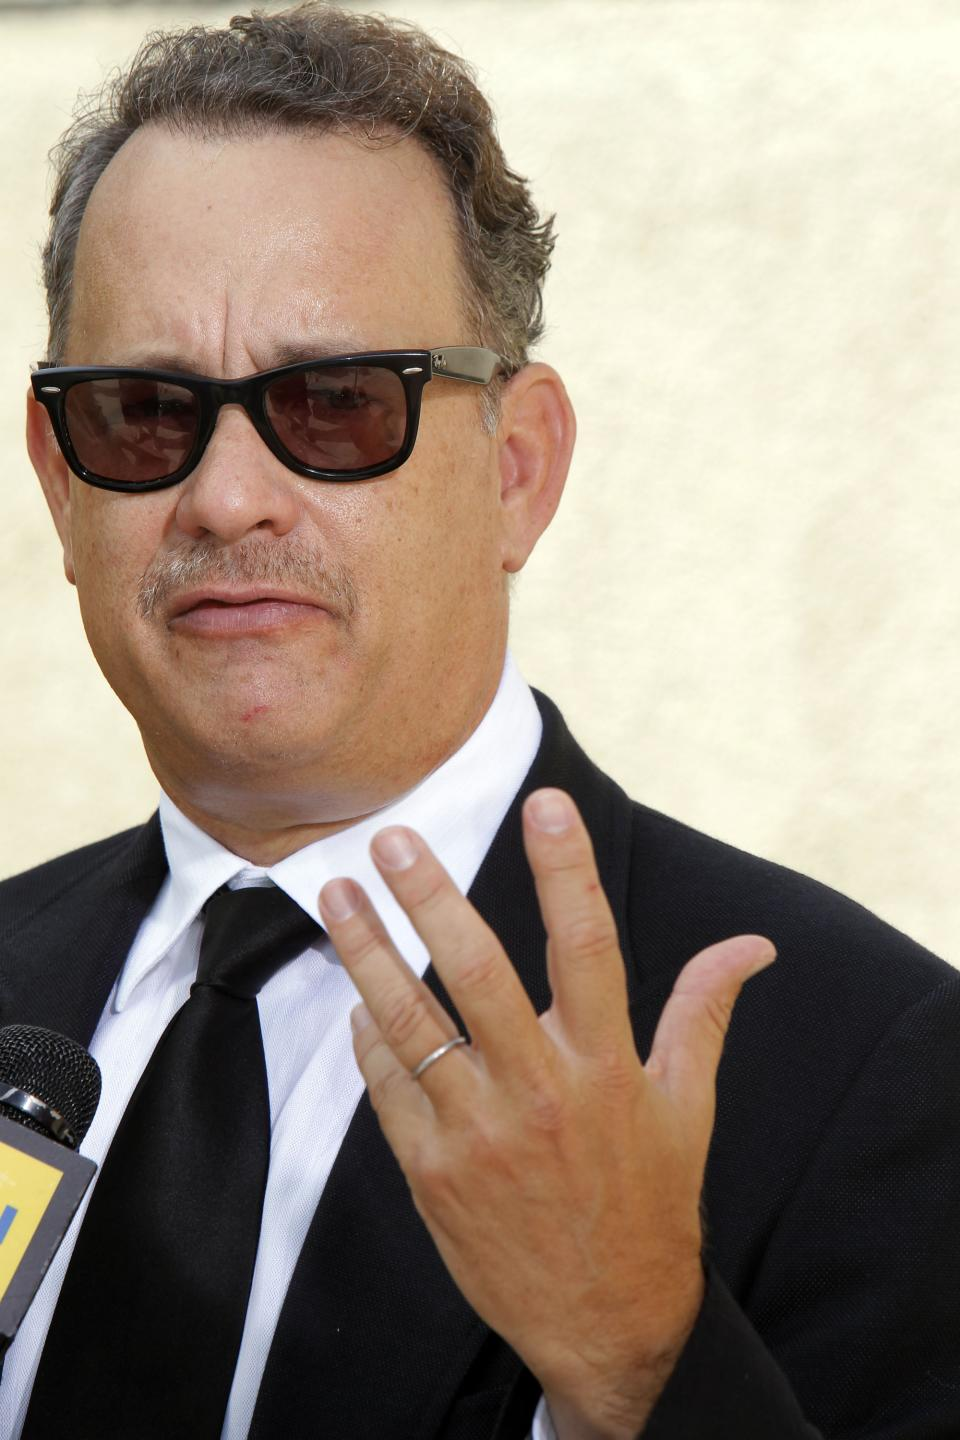 Actor Tom Hanks arrives at the Michael Clarke Duncan Memorial Service at Forest Lawn Memorial-Park and Mortuaries in the Hollywood Hills section of Los Angeles, Monday, September 10,  2012. (AP Photo/Nick Ut)